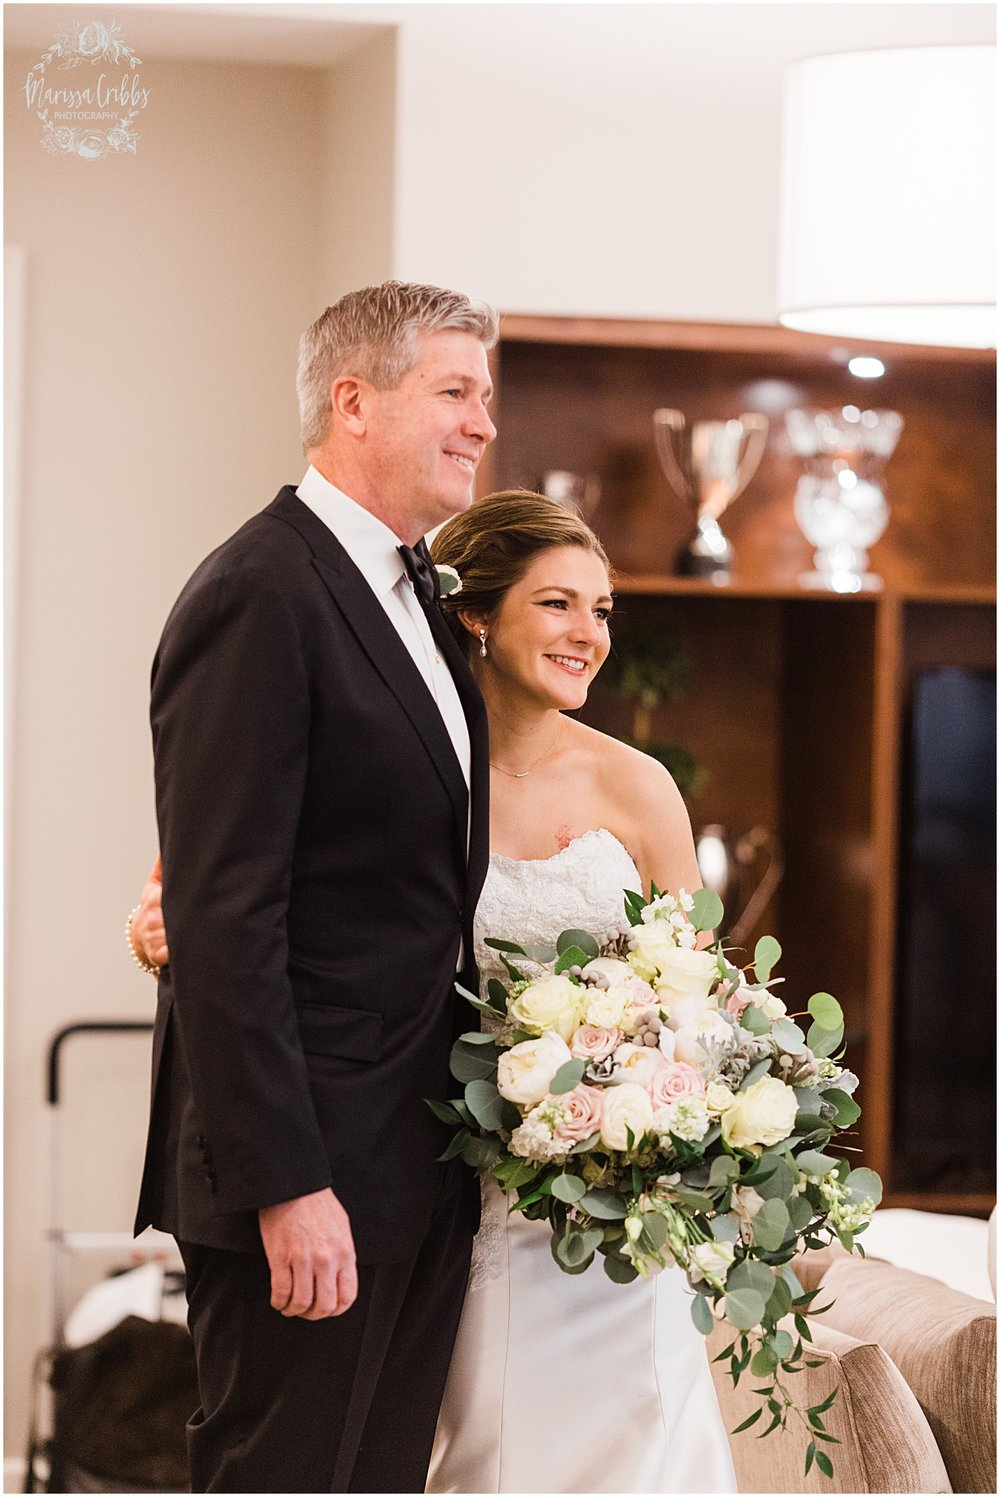 JOE & CAROLINE MARRIED | INDIAN HILLS COUNTRY CLUB | MARISSA CRIBBS PHOTOGRAPHY_7179.jpg